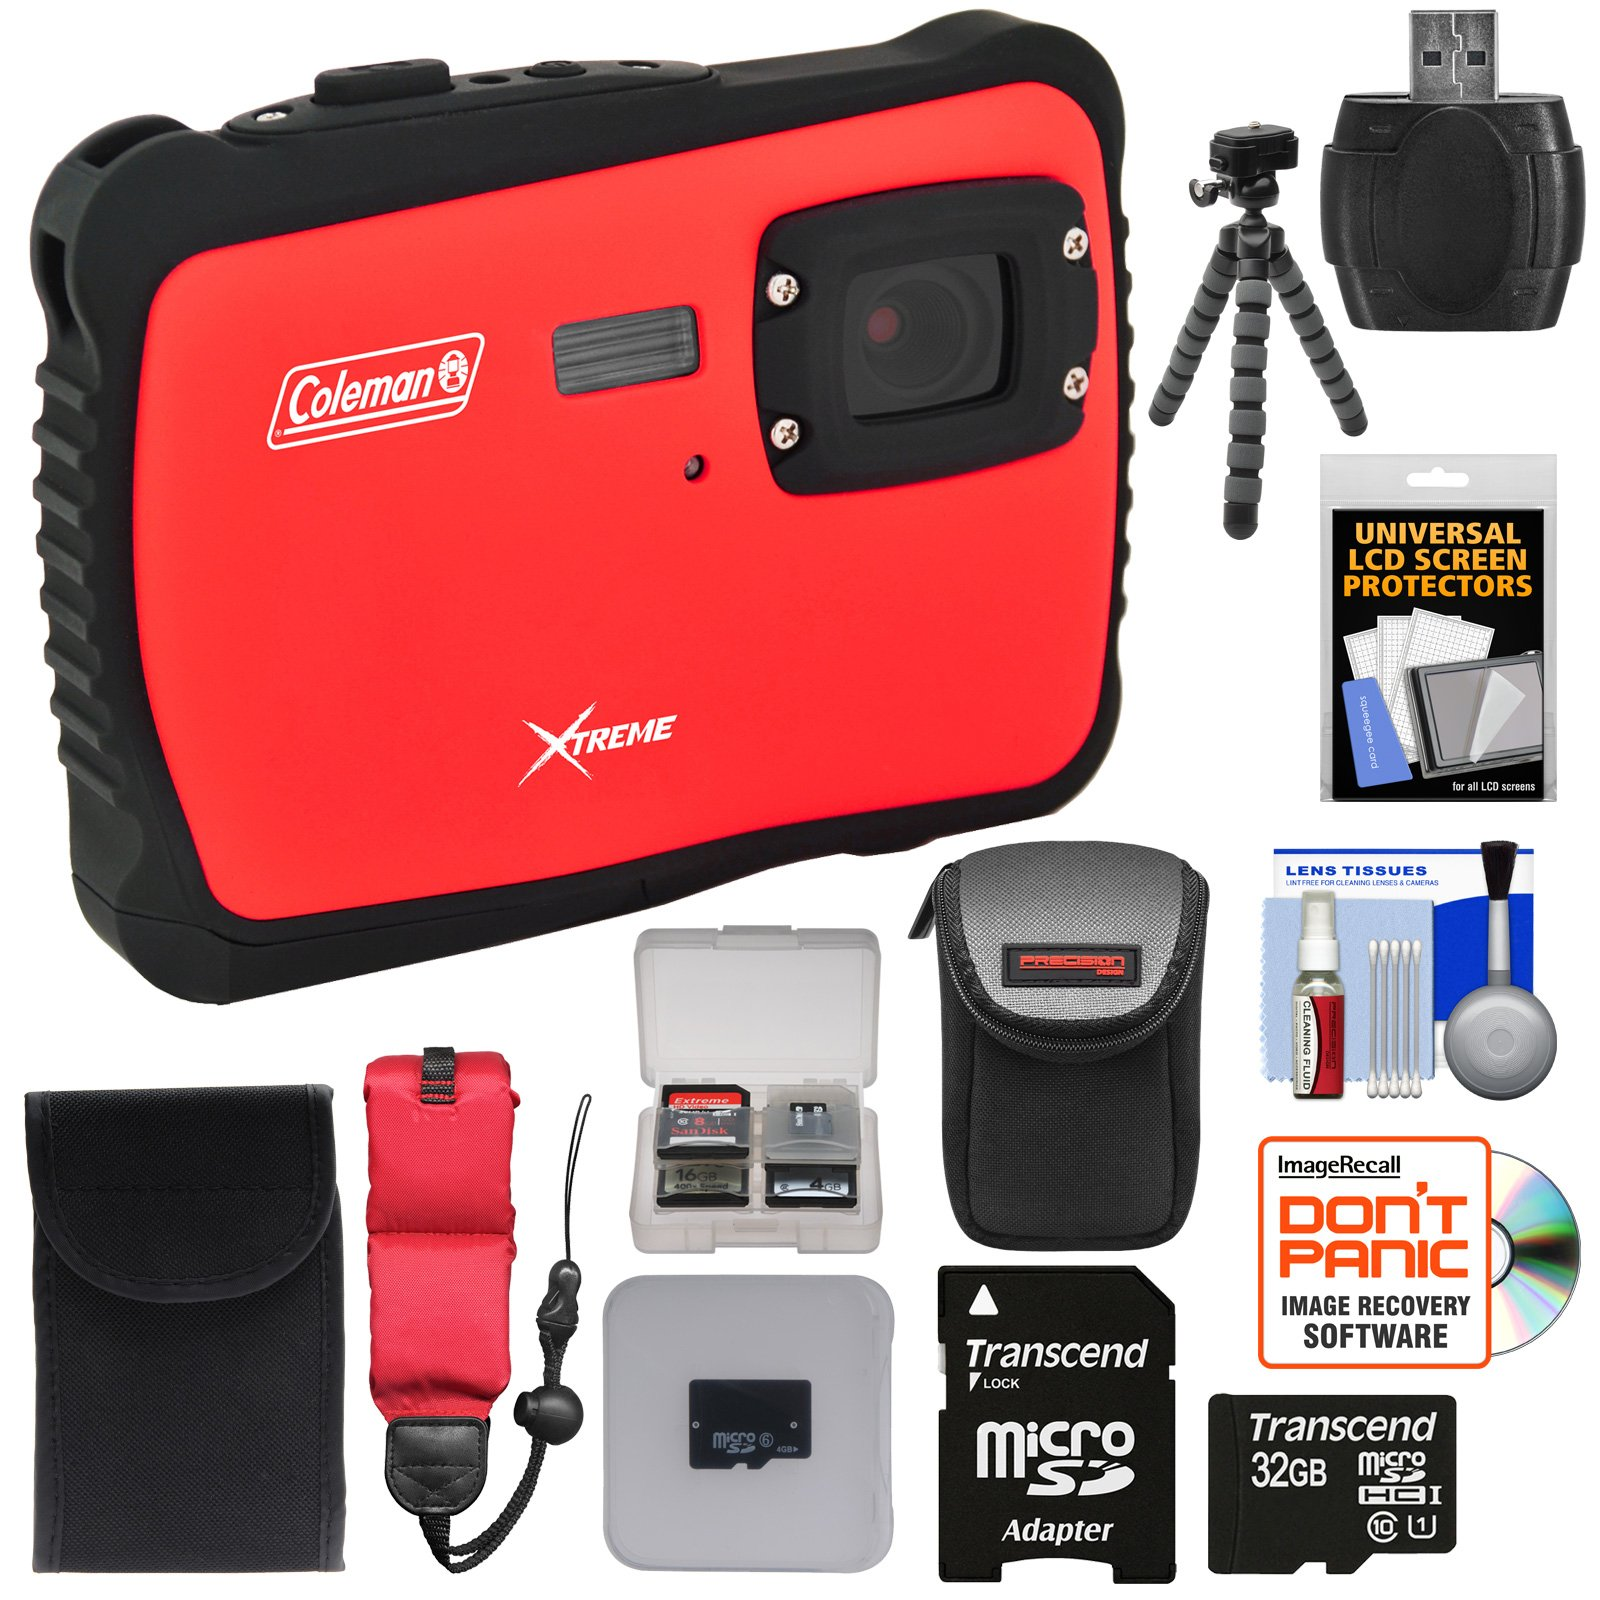 Coleman Xtreme C6WP HD Shock & Waterproof Digital Camera (Red) with 32GB Card + Case + Flex Tripod + Kit by Coleman